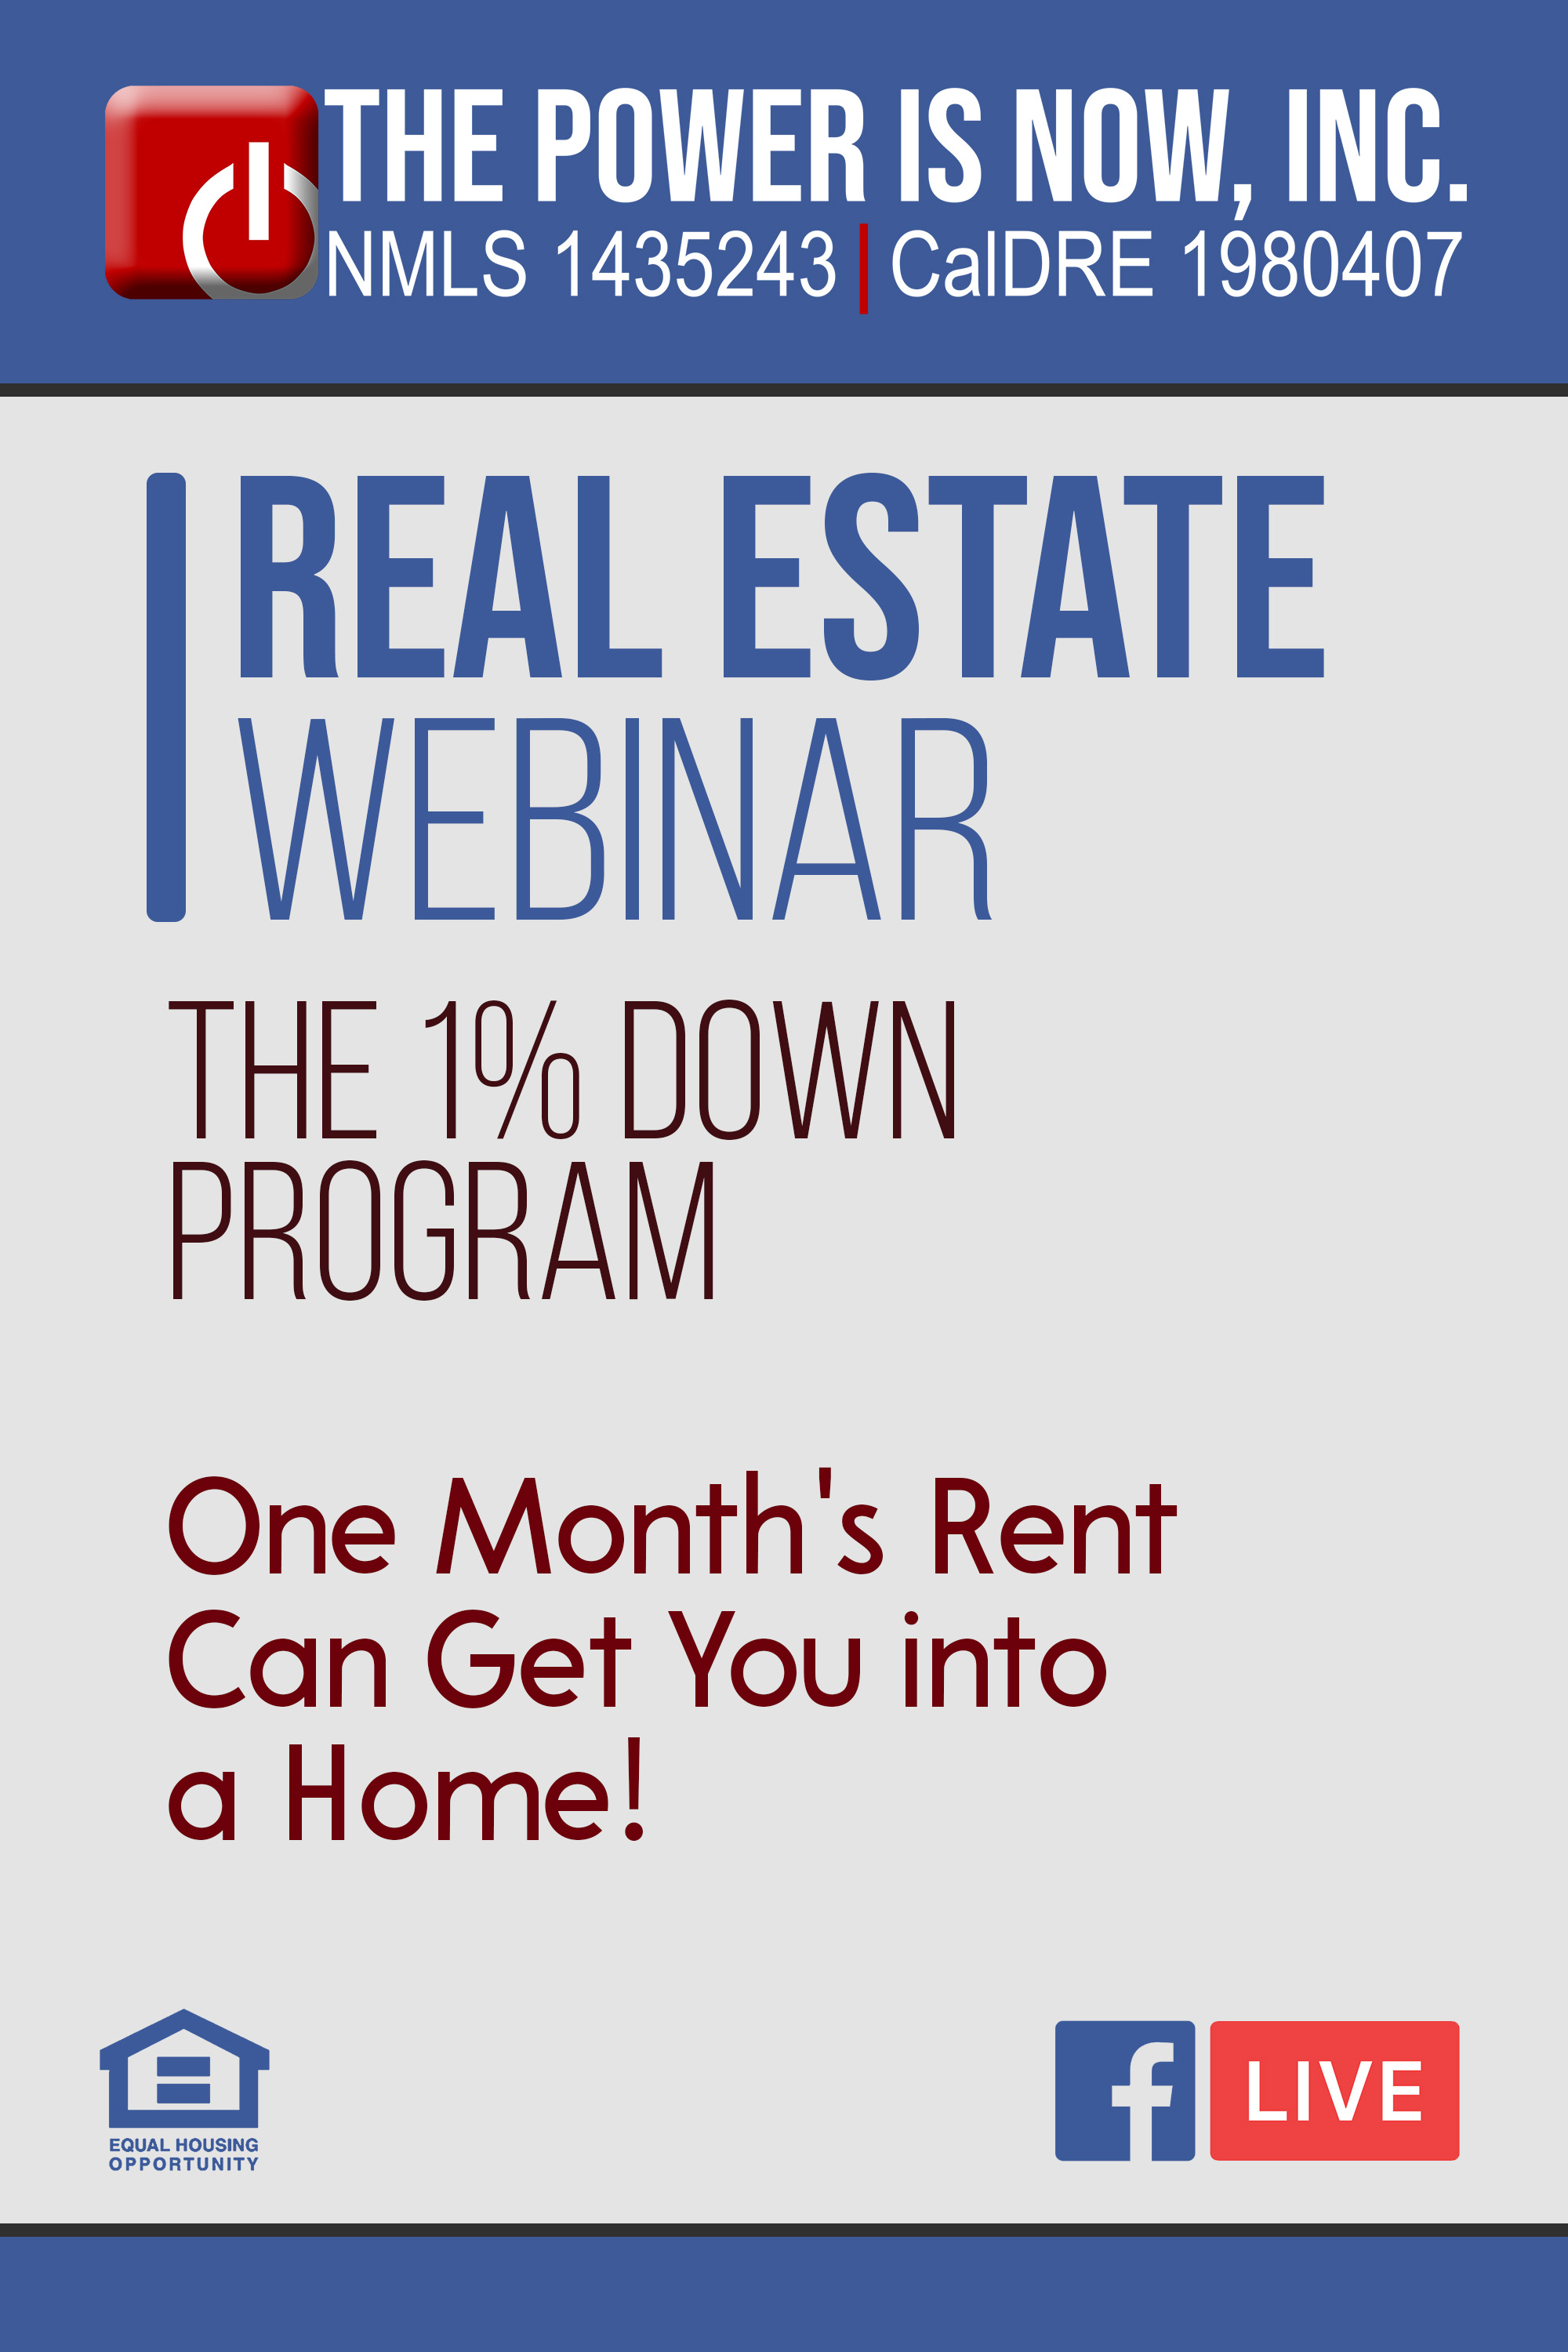 The 1% Down Program – One Month's Rent Can Get You into a Home!